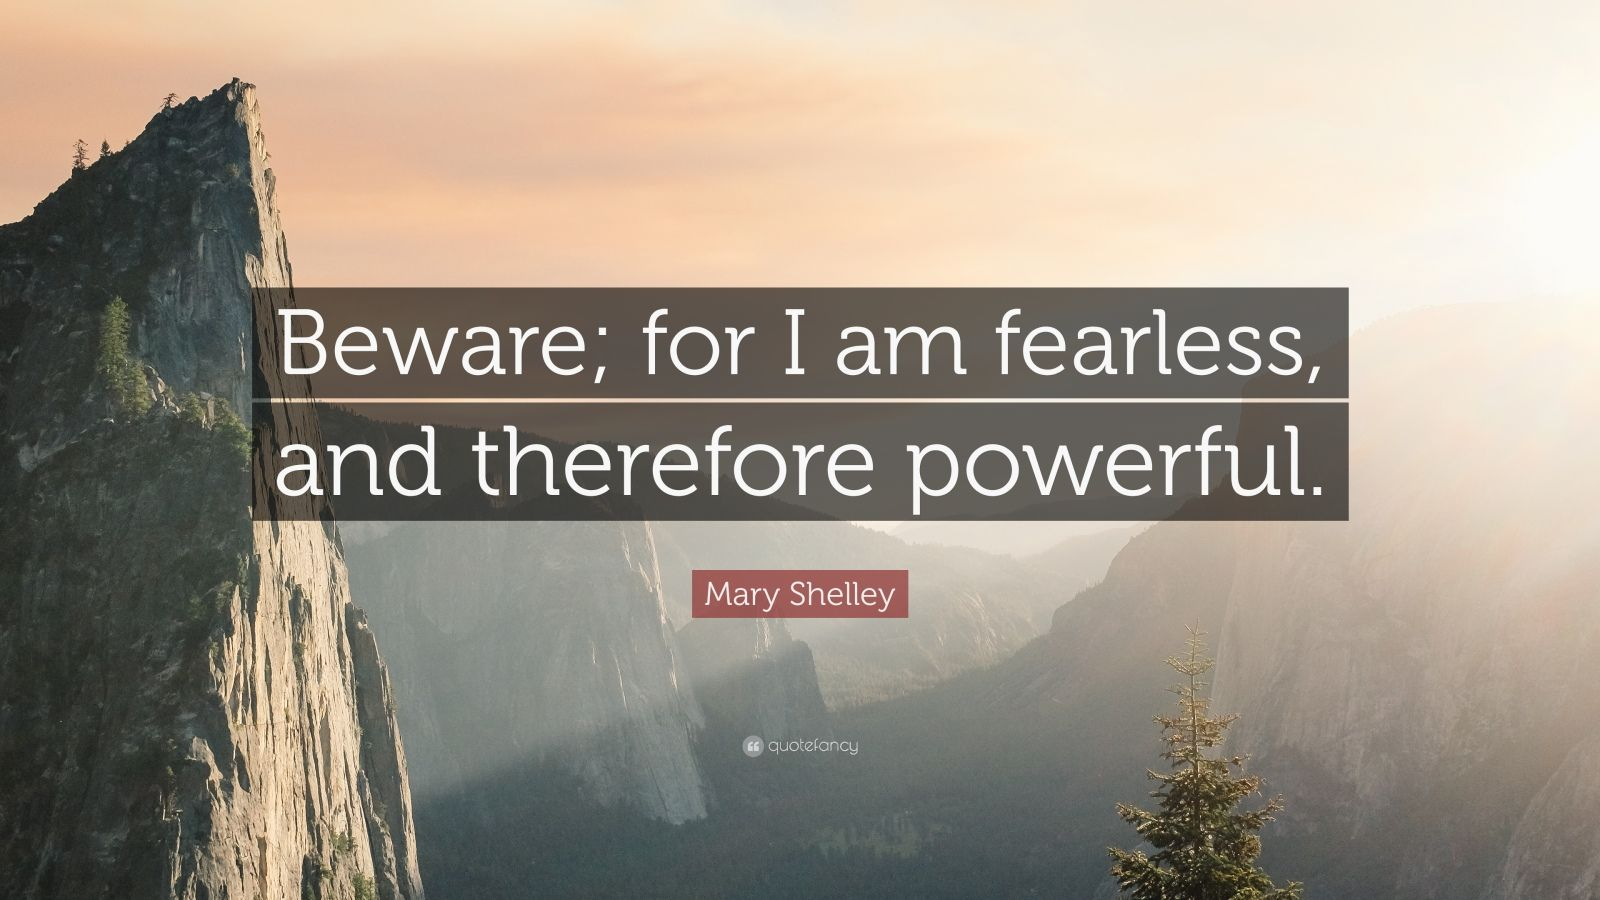 Wallpapers Philosophy Quotes Mary Shelley Quote Beware For I Am Fearless And